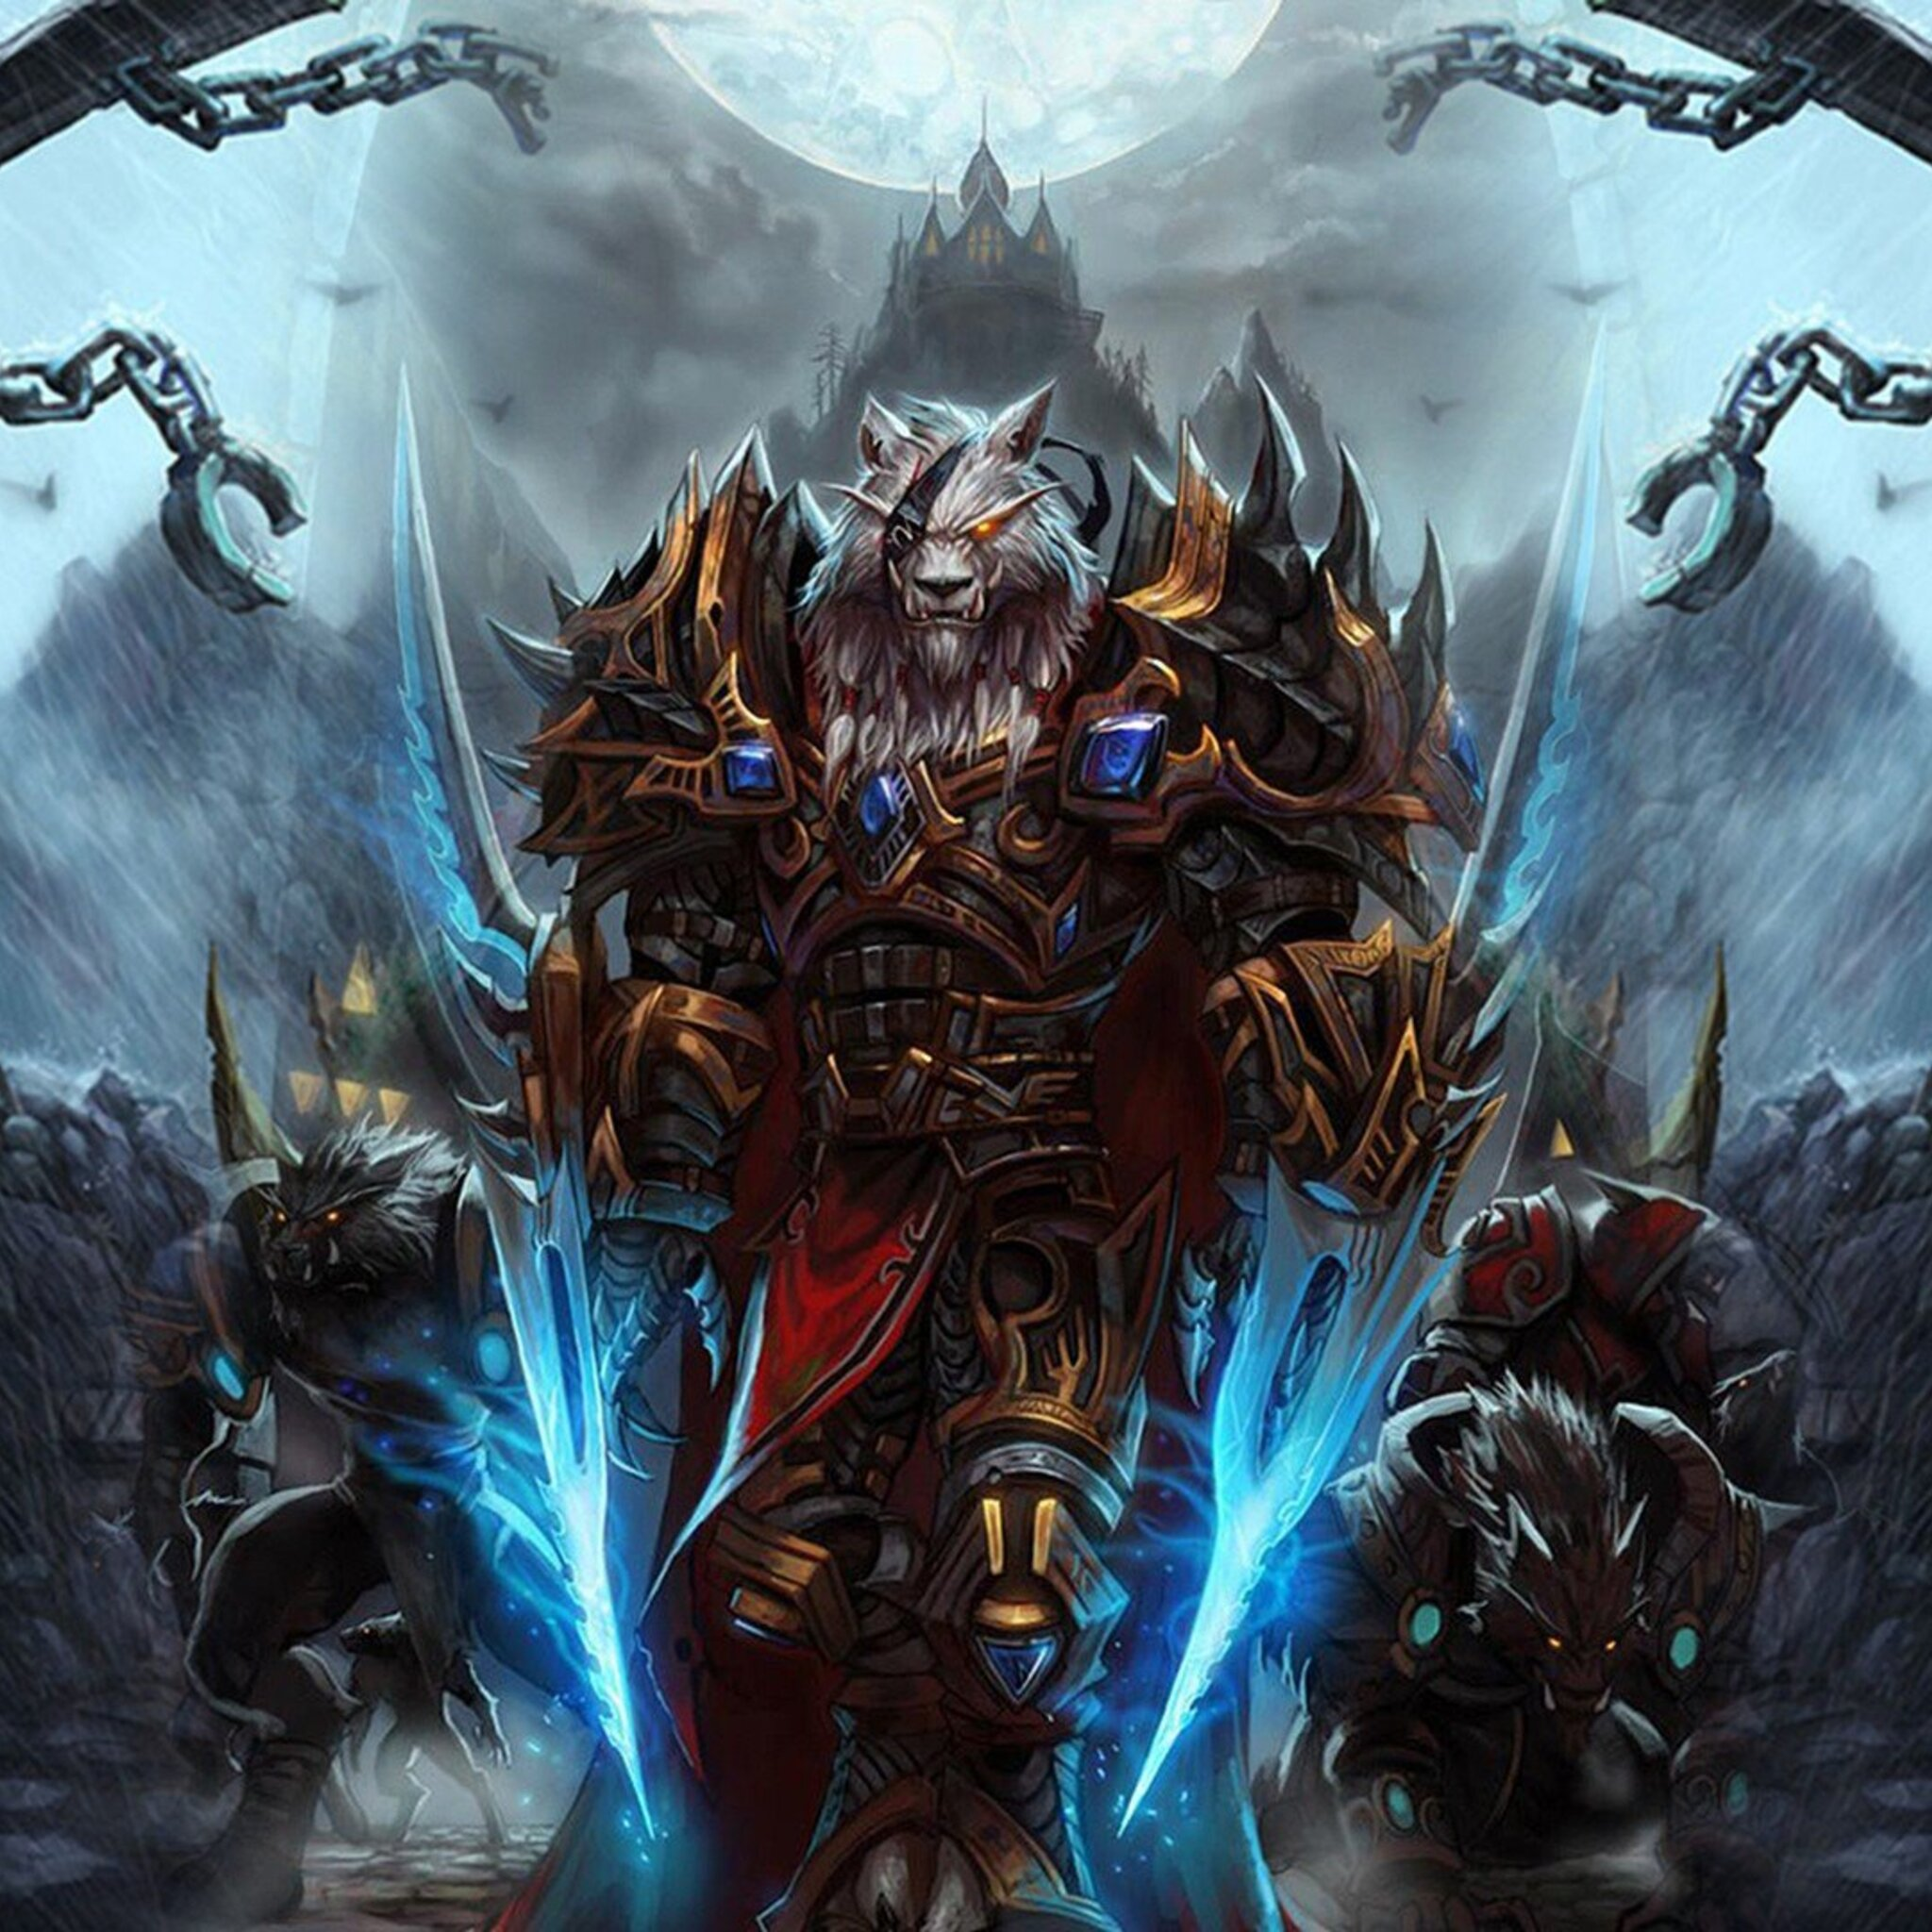 2048x2048 World Of Warcraft Worgen Character Ipad Air HD 4k Wallpapers, Images, Backgrounds ...